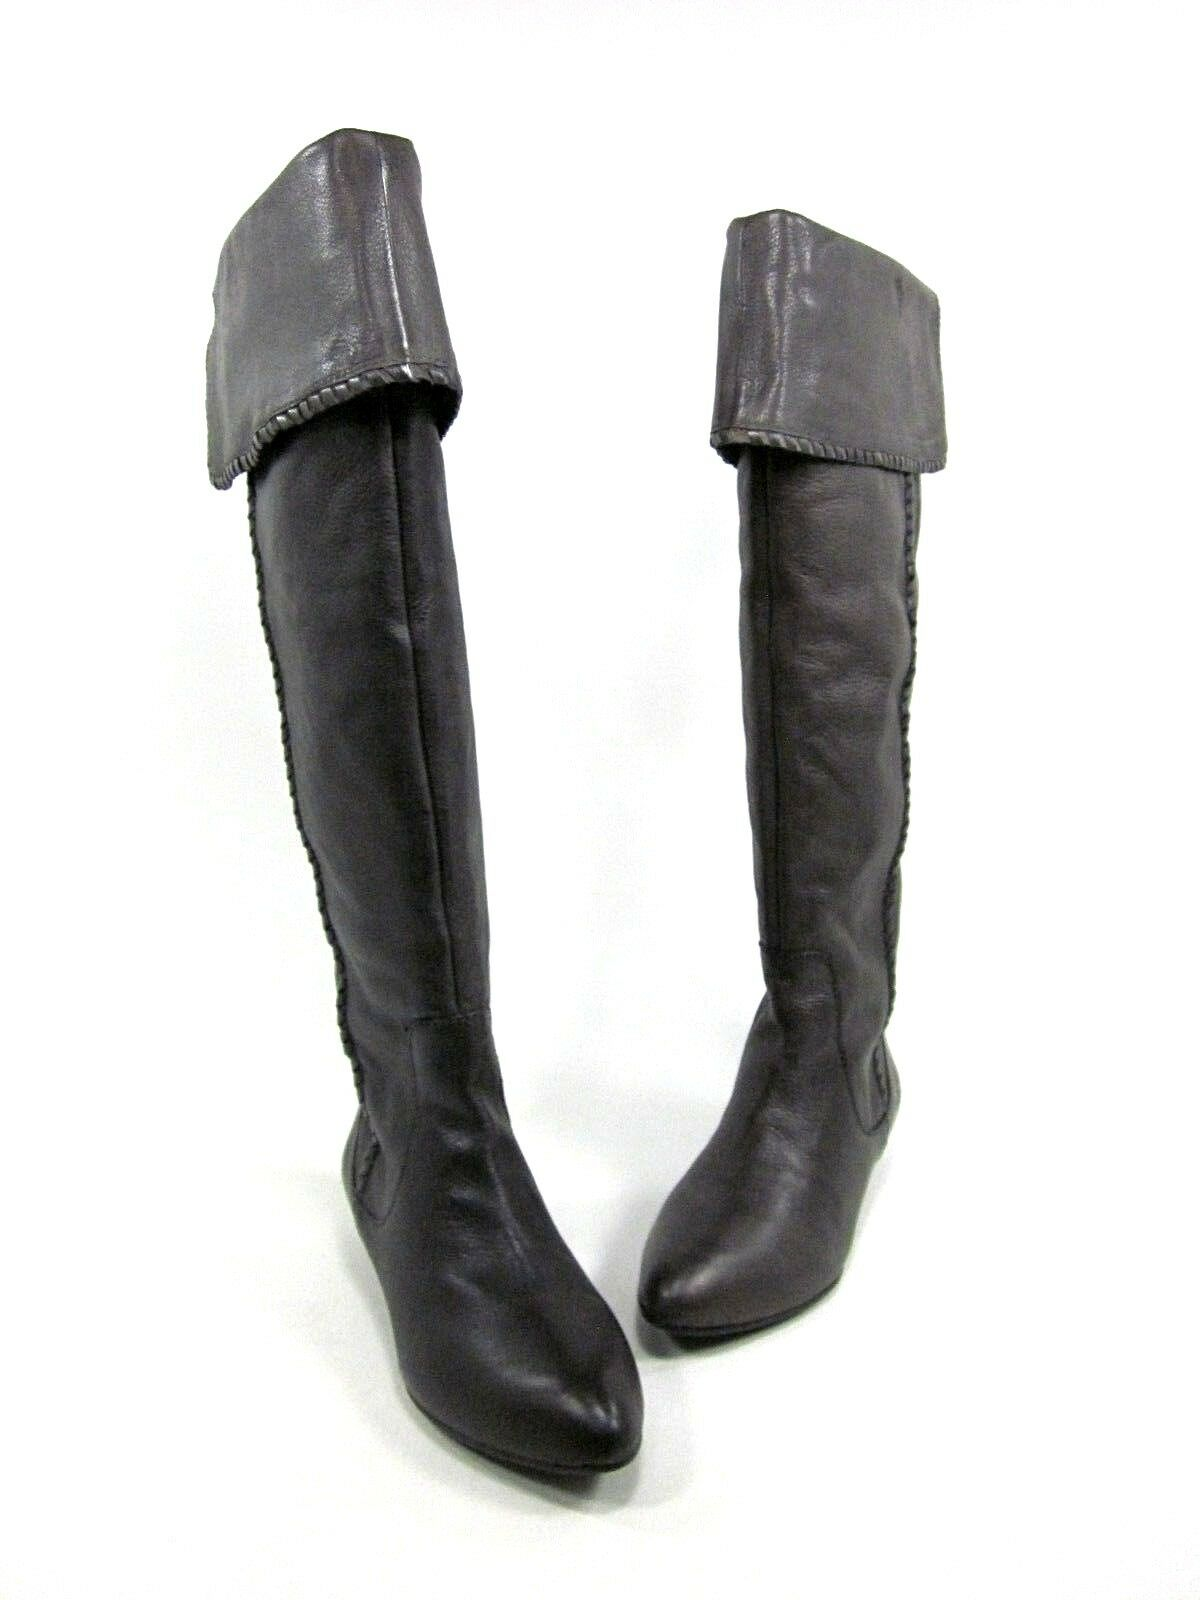 LUCKY BRAND WOMEN'S GAI BOOT, ROCK, US SIZE 5.5, MEDIUM, NEW DISPLAY W O BOX